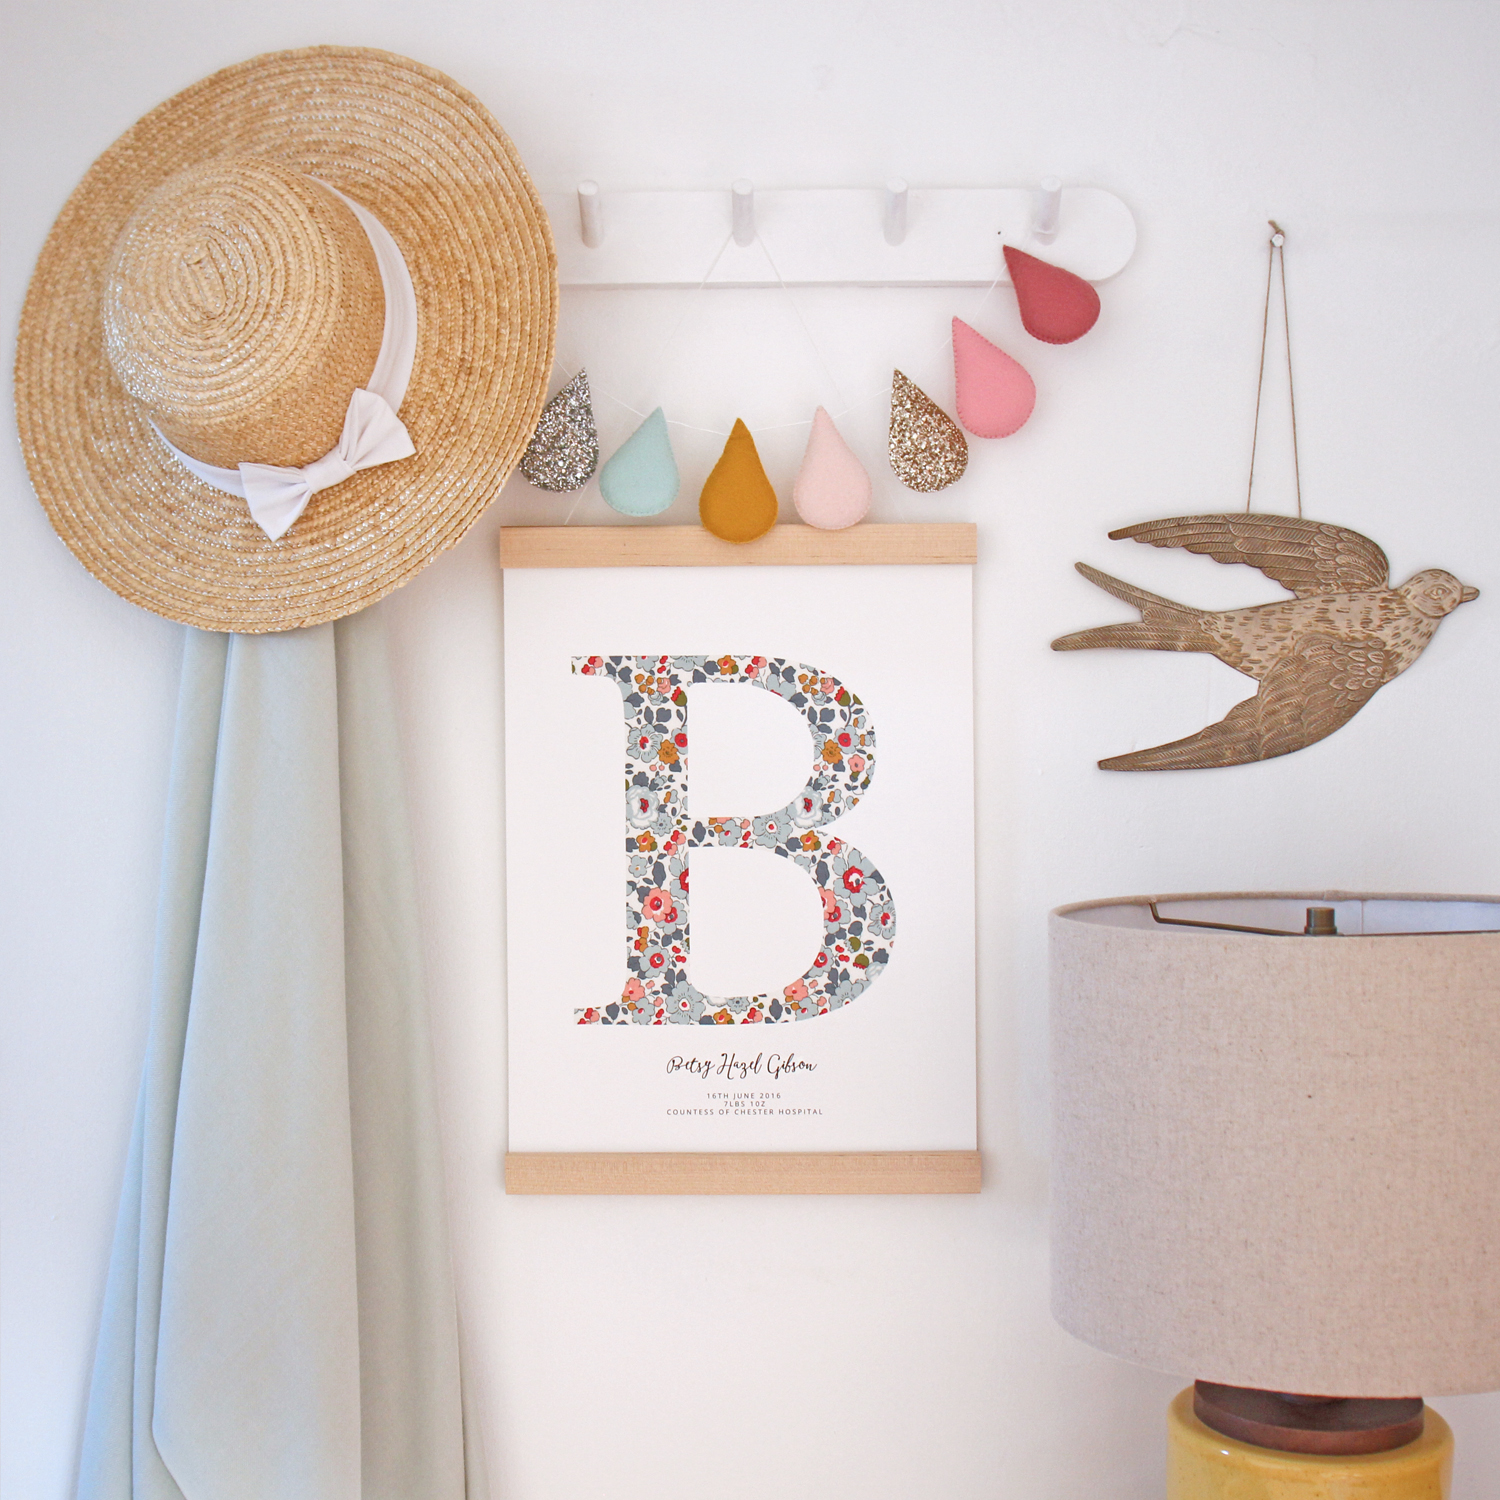 The-Charming-Press-product-photography-nancy-straughan-nursery-prints-art-styling-liberty-personalised.jpg